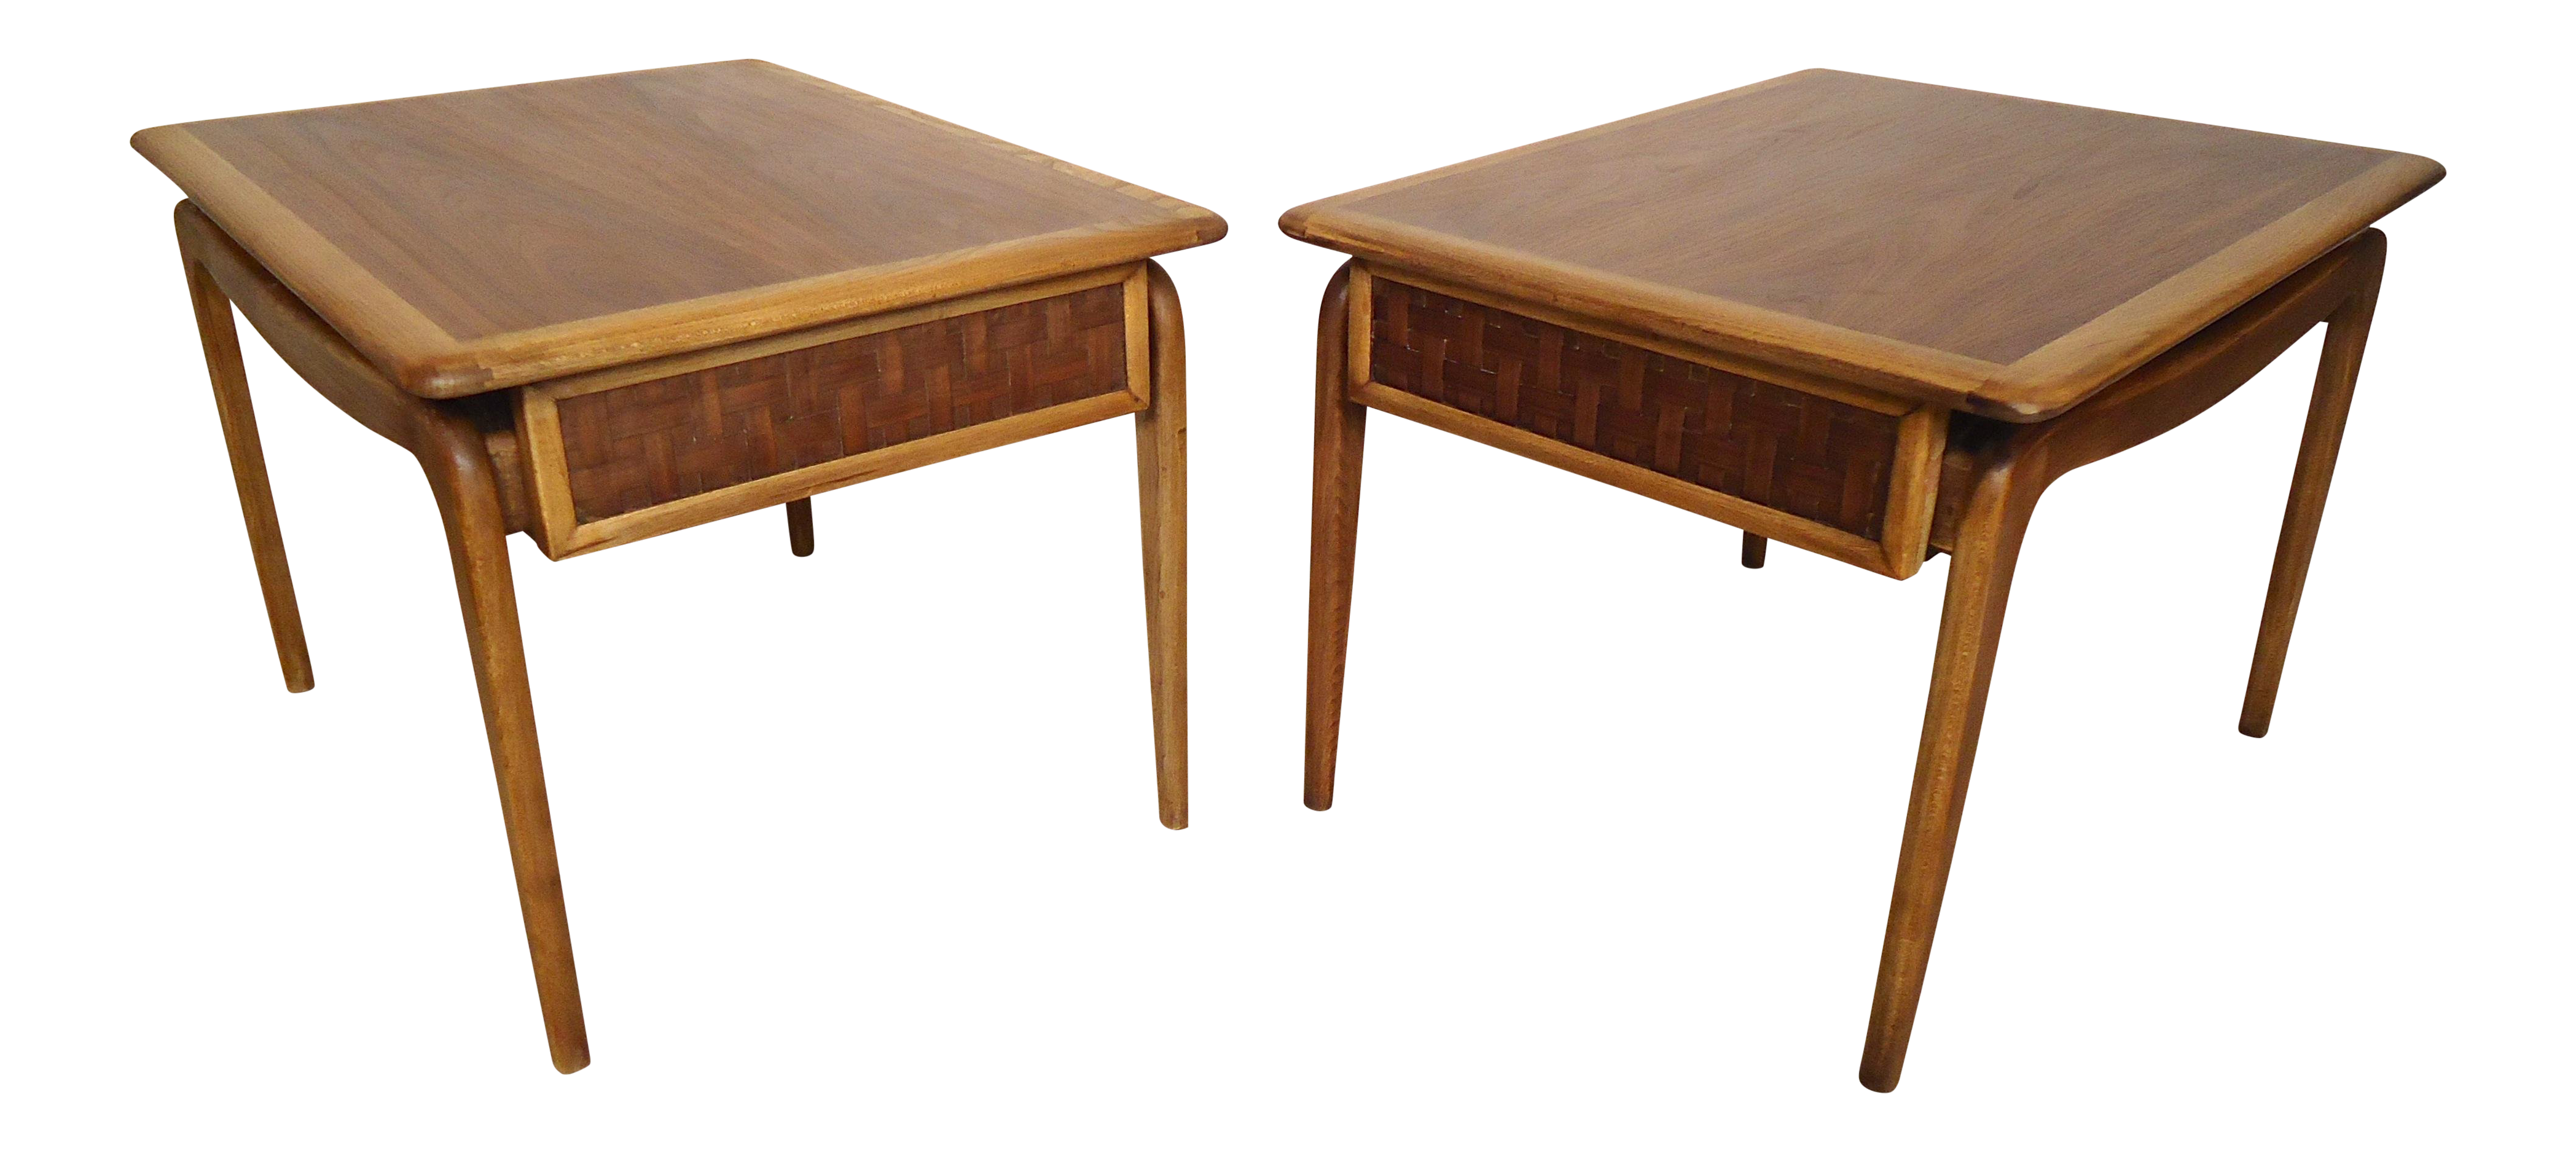 lane mid century end tables pair chairish table with drawer french country furniture direct wire outdoor chairs malden elephant statue matching coffee and small living room